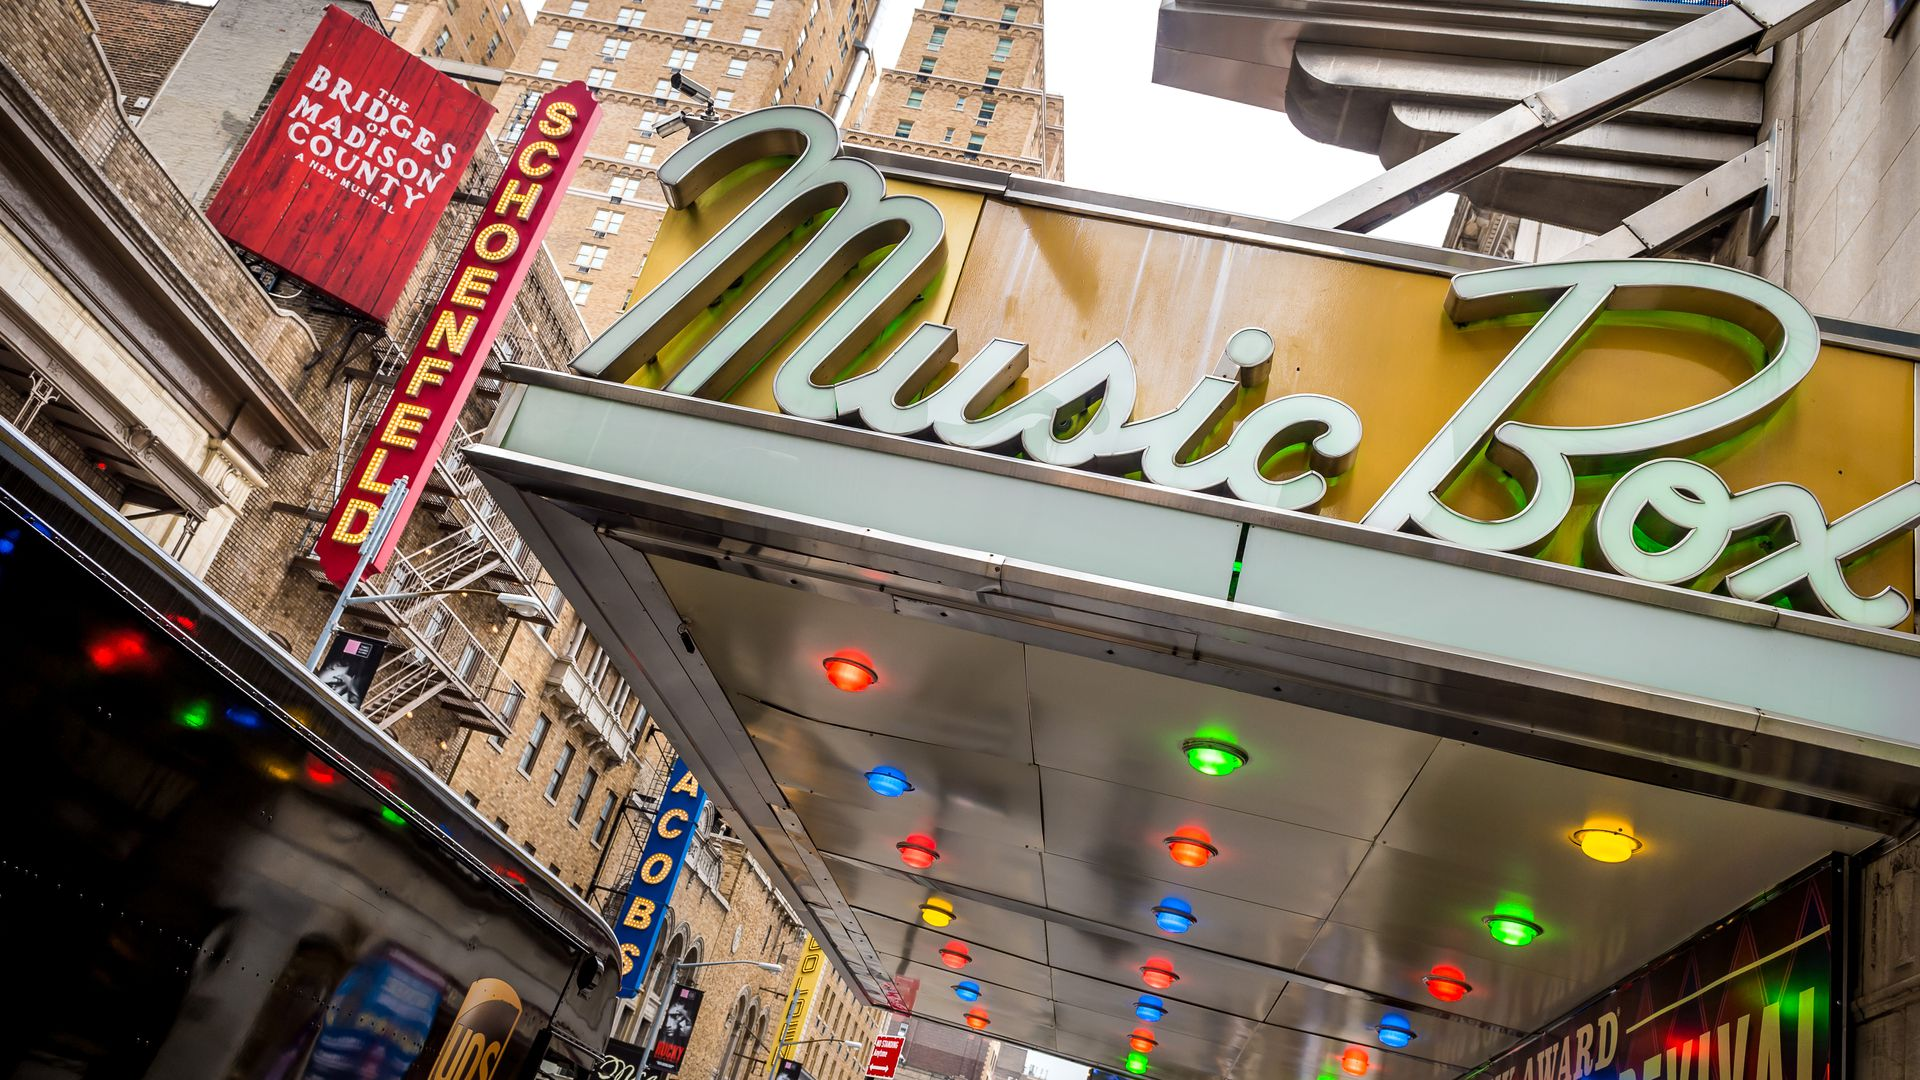 Several Broadway theaters owned by The Shubert Organization